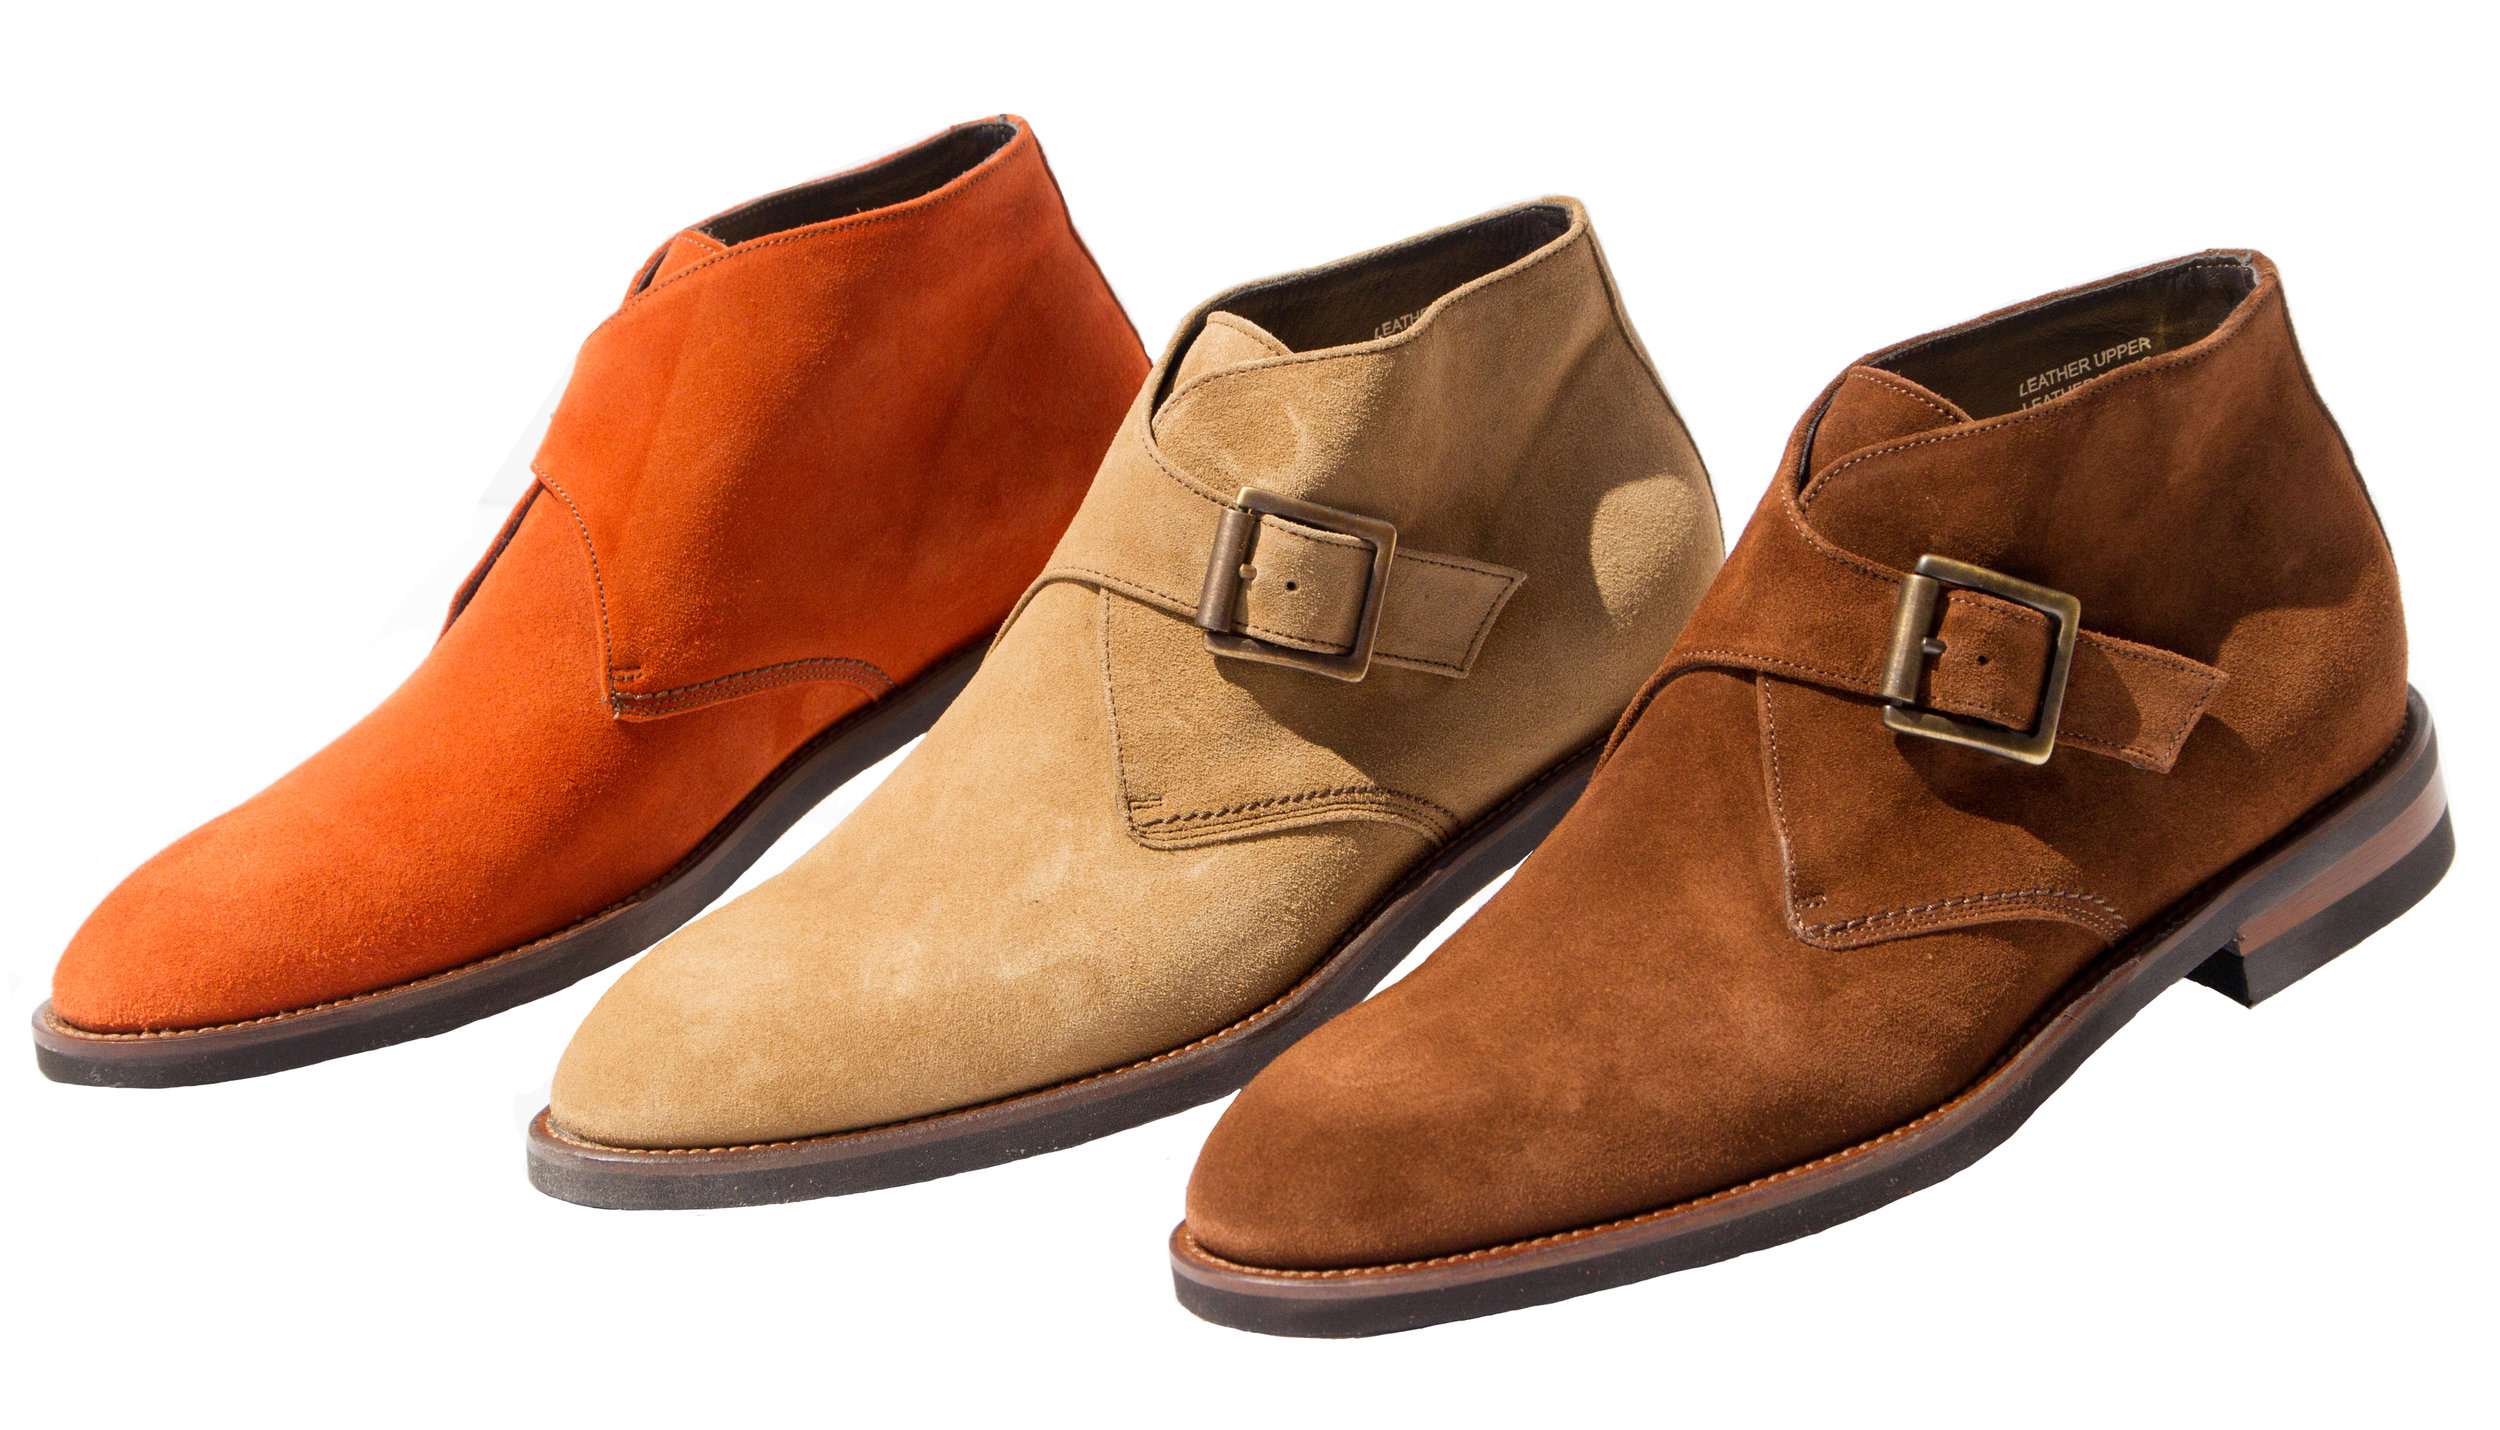 Style # H745: Burnt Orange, Taupe, Brick  Velour Suede Monkstrap Demi Boot   Sizes available: 41 to 47 EU, including half size